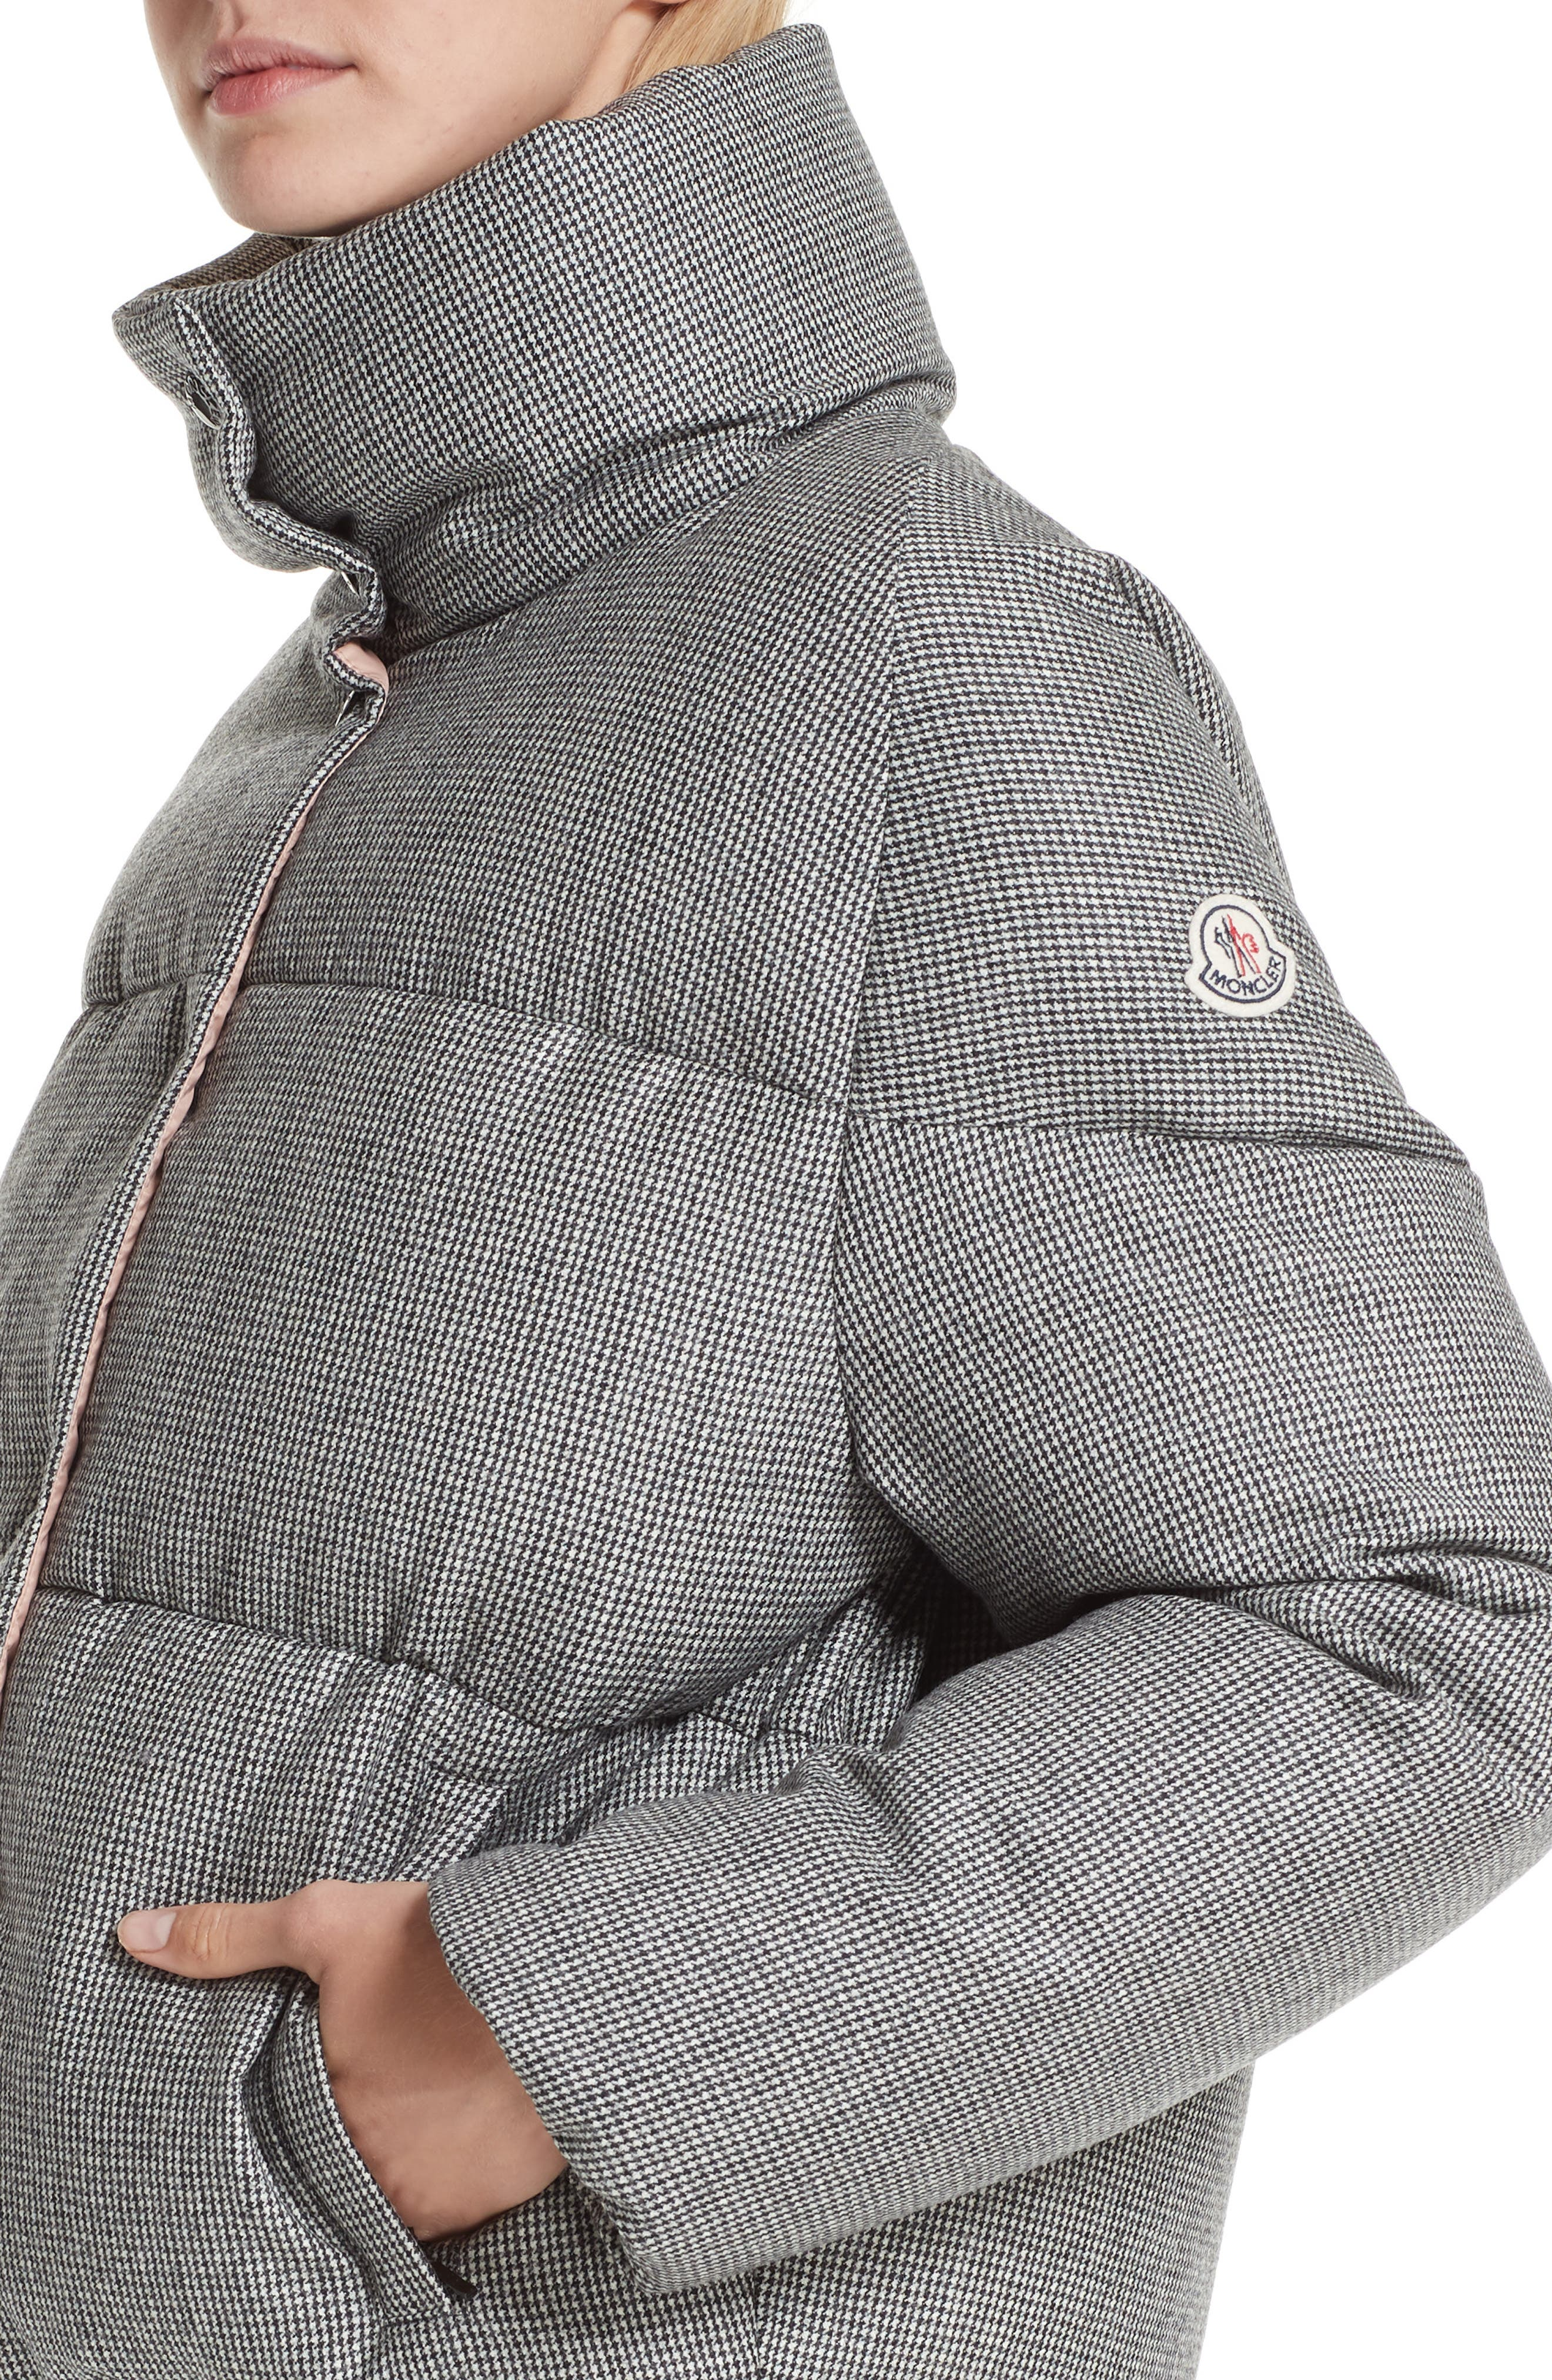 MONCLER, Cer Wool Down Puffer Jacket, Alternate thumbnail 4, color, 001